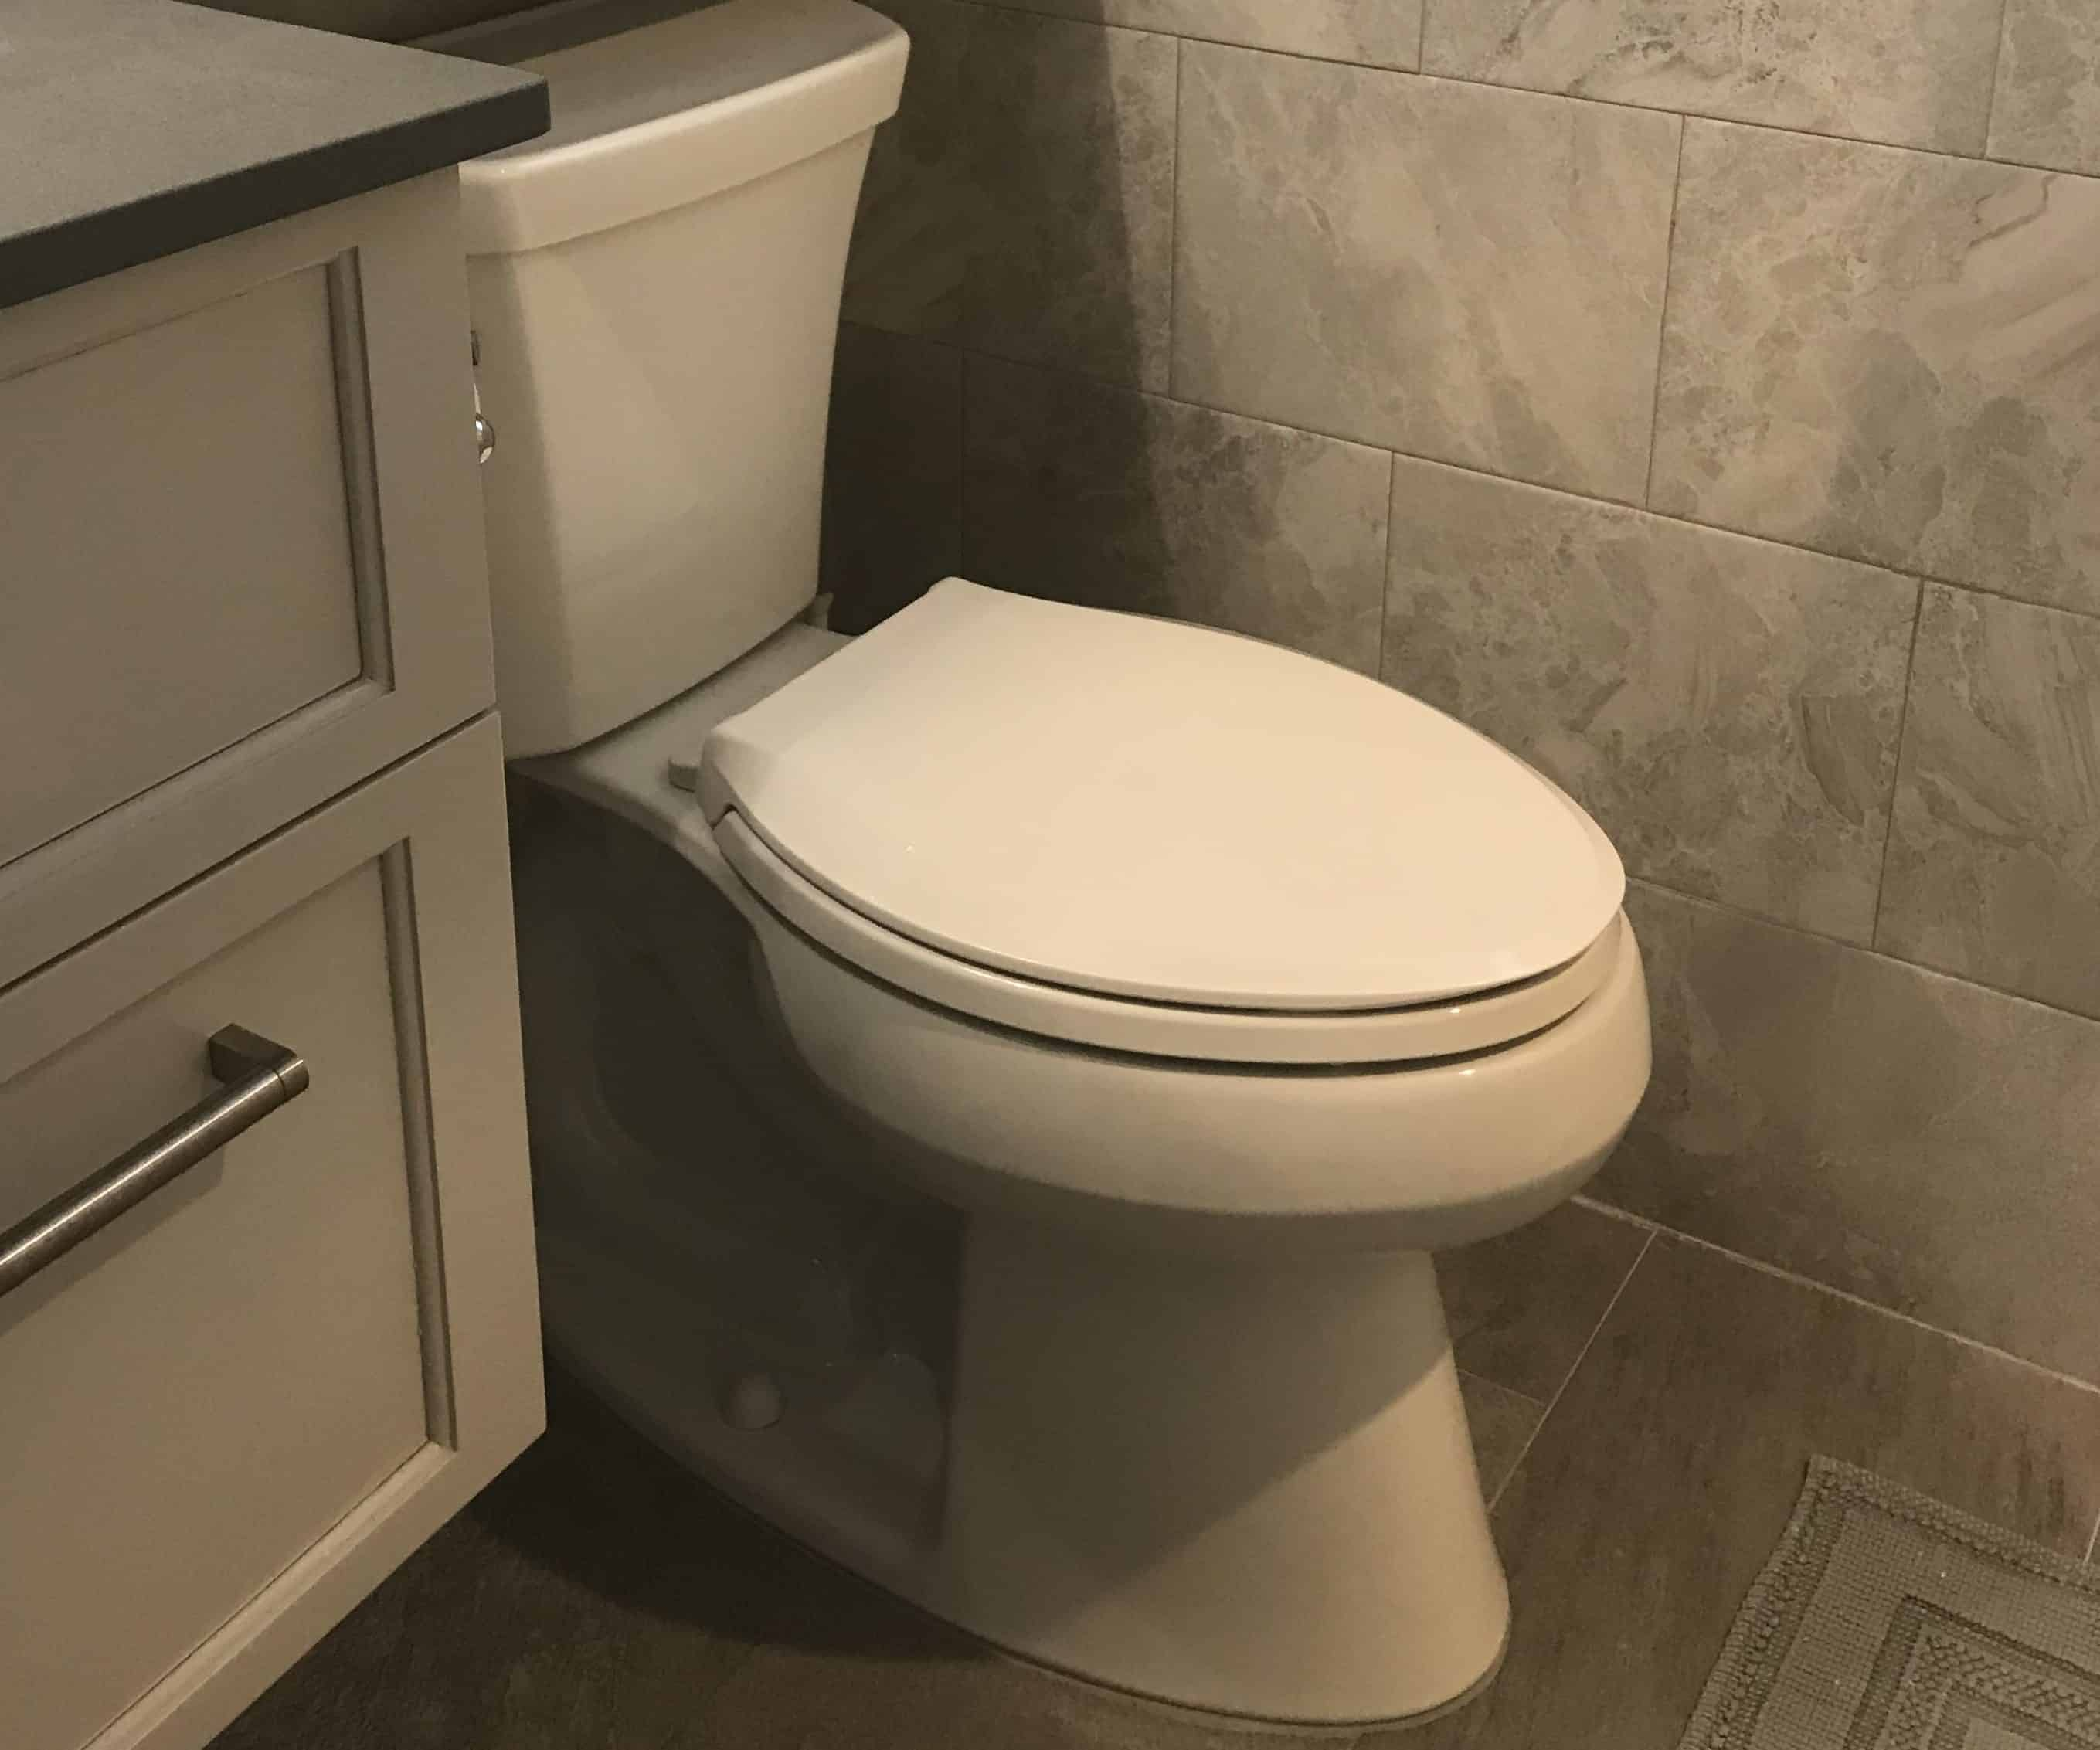 How To Fix A Weak Flushing Toilet 8 Simple Solutions Prudent Reviews